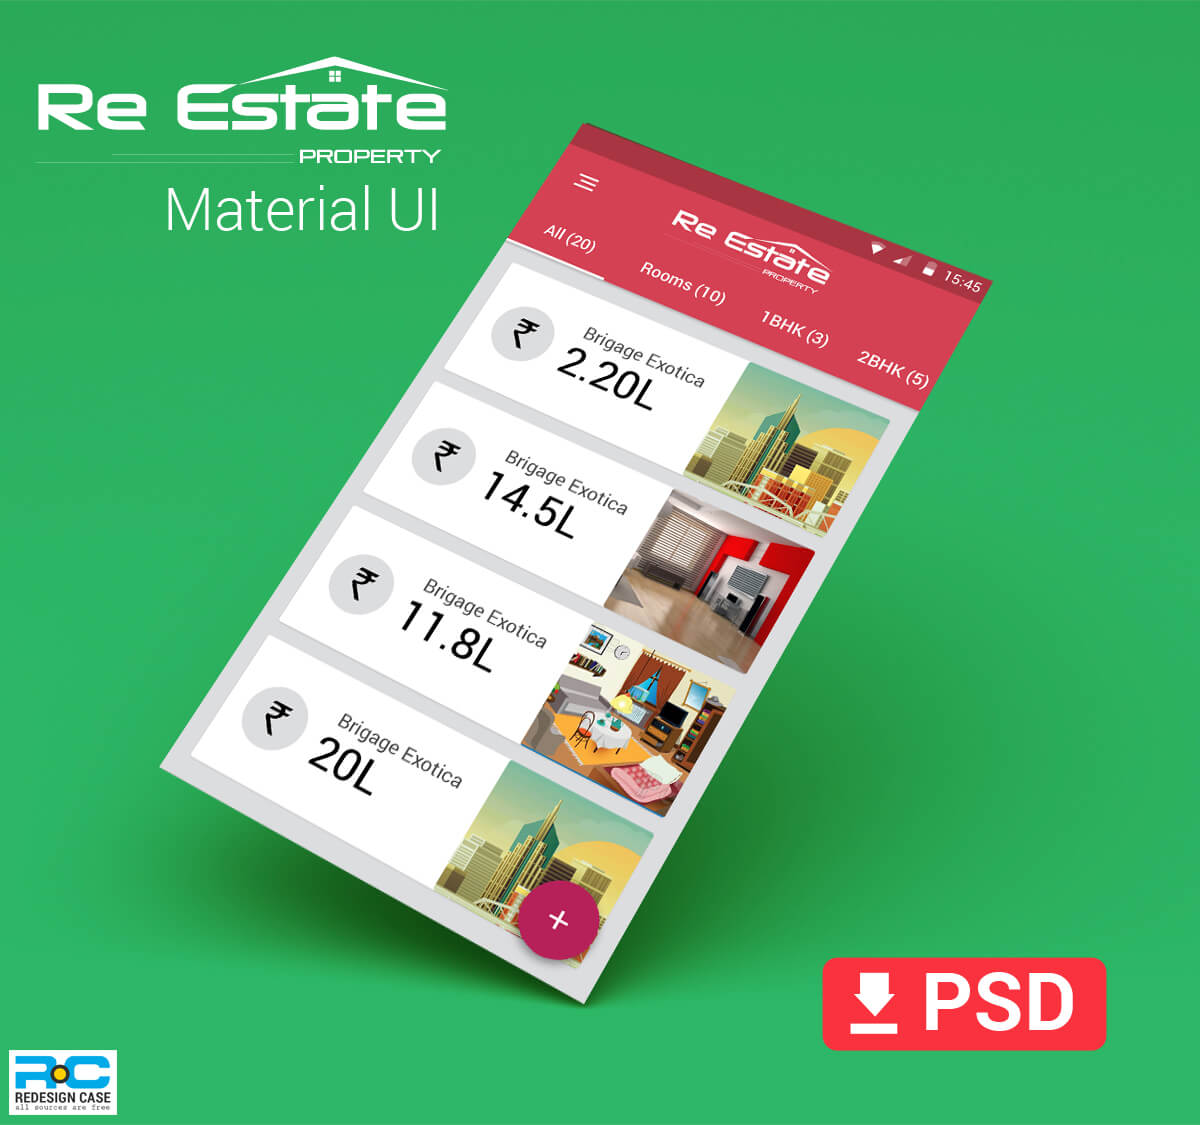 realEstate app material app design screen